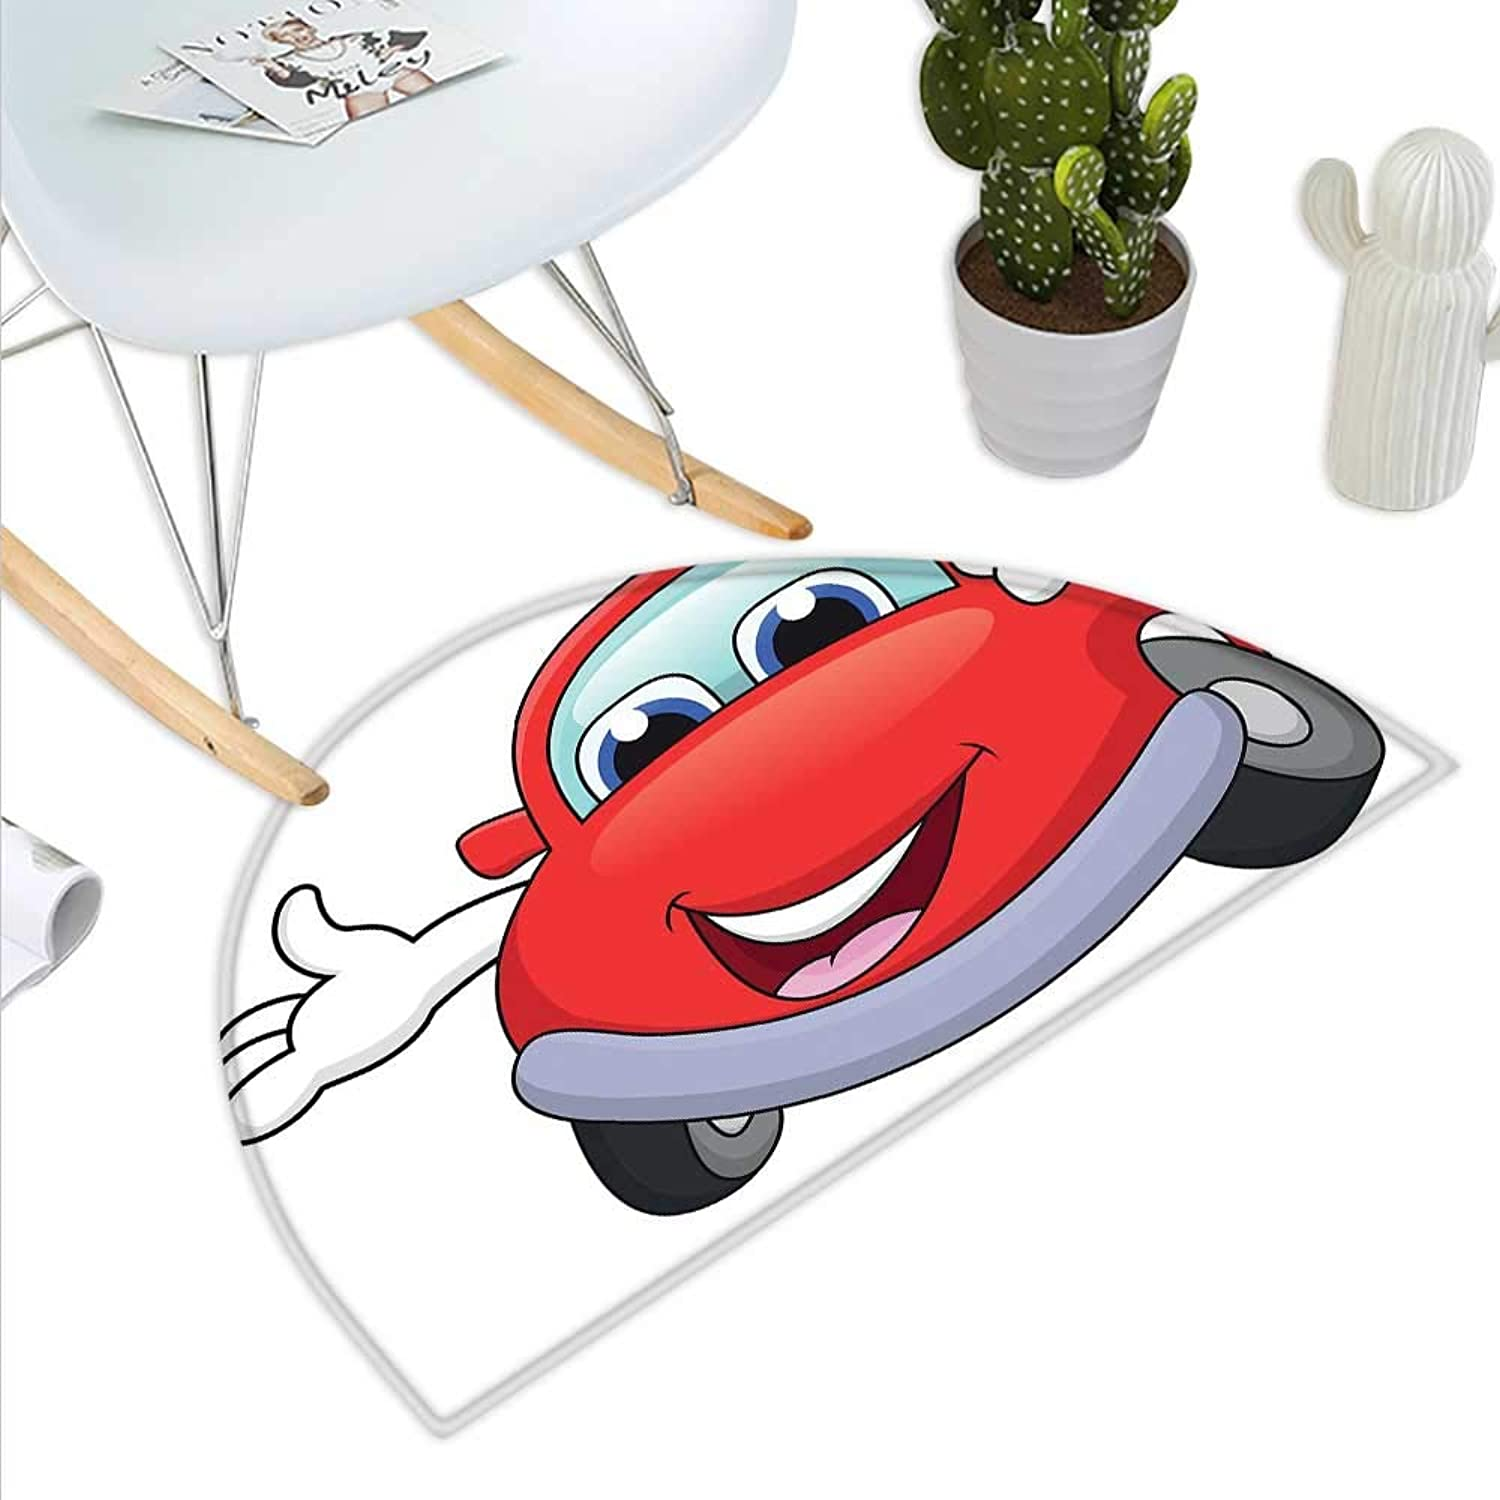 Cars Semicircle Doormat Cartoon Red Car with Eyes Mouth and Hands with a Thumbs Up Happy Image Print Halfmoon doormats H 35.4  xD 53.1  Vermilion purplec